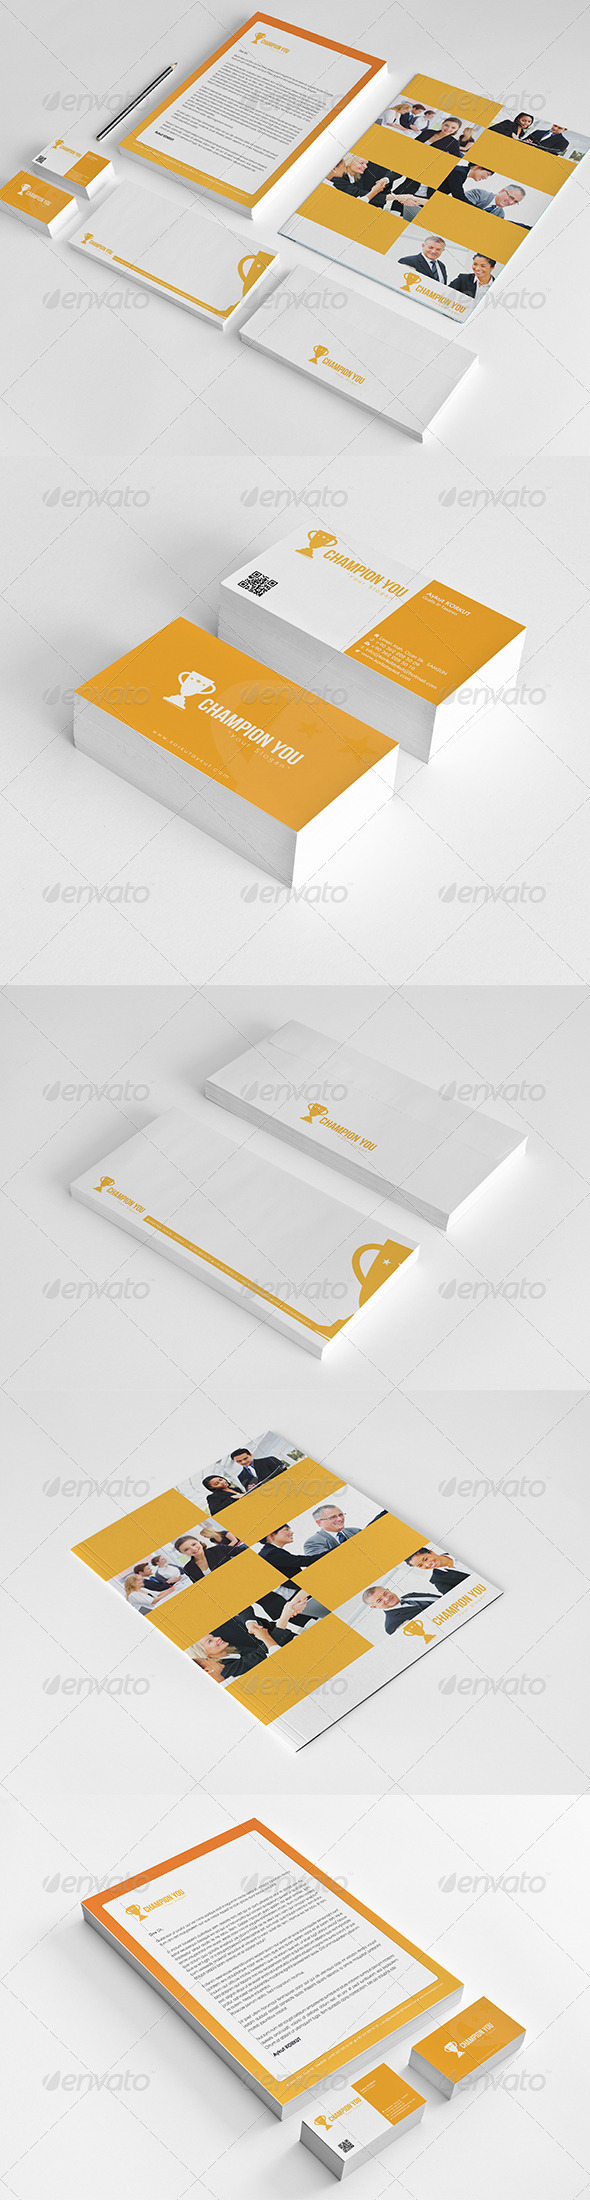 GraphicRiver Champion Corporate Identity Package 6069332